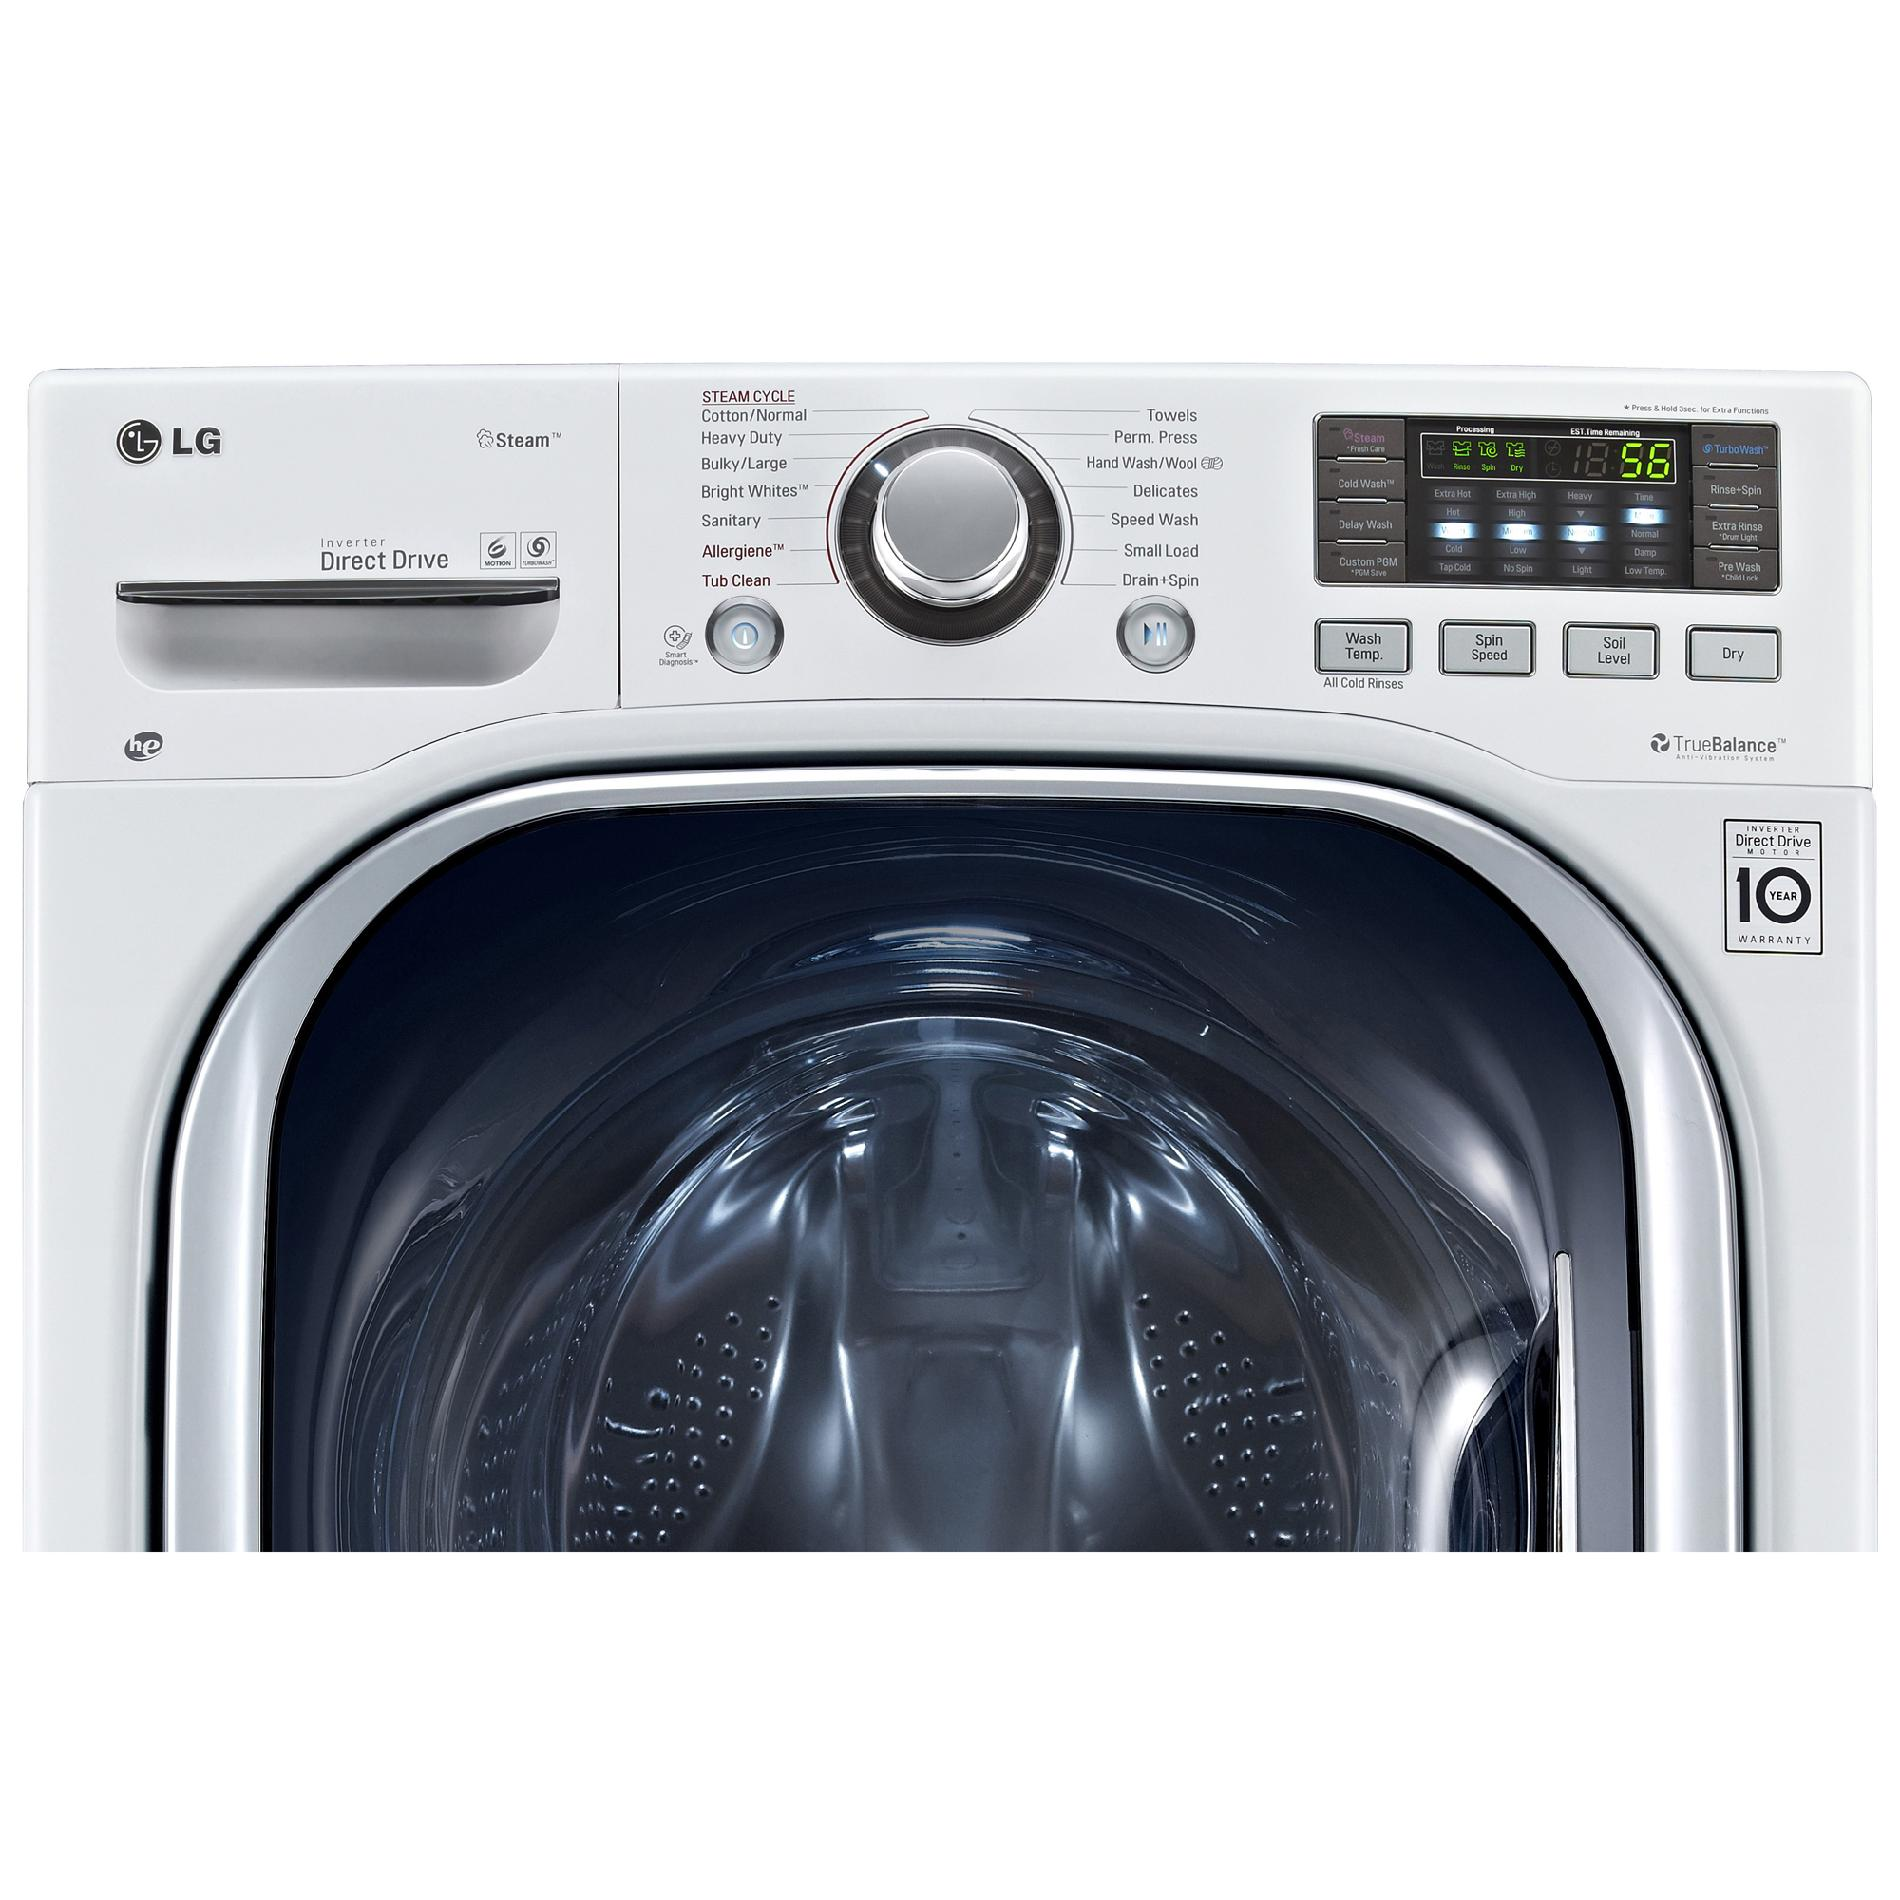 LG WM3997HWA 4.3 cu.ft. Ultra Lar Capacity Front Load Washer / Dryer Combo